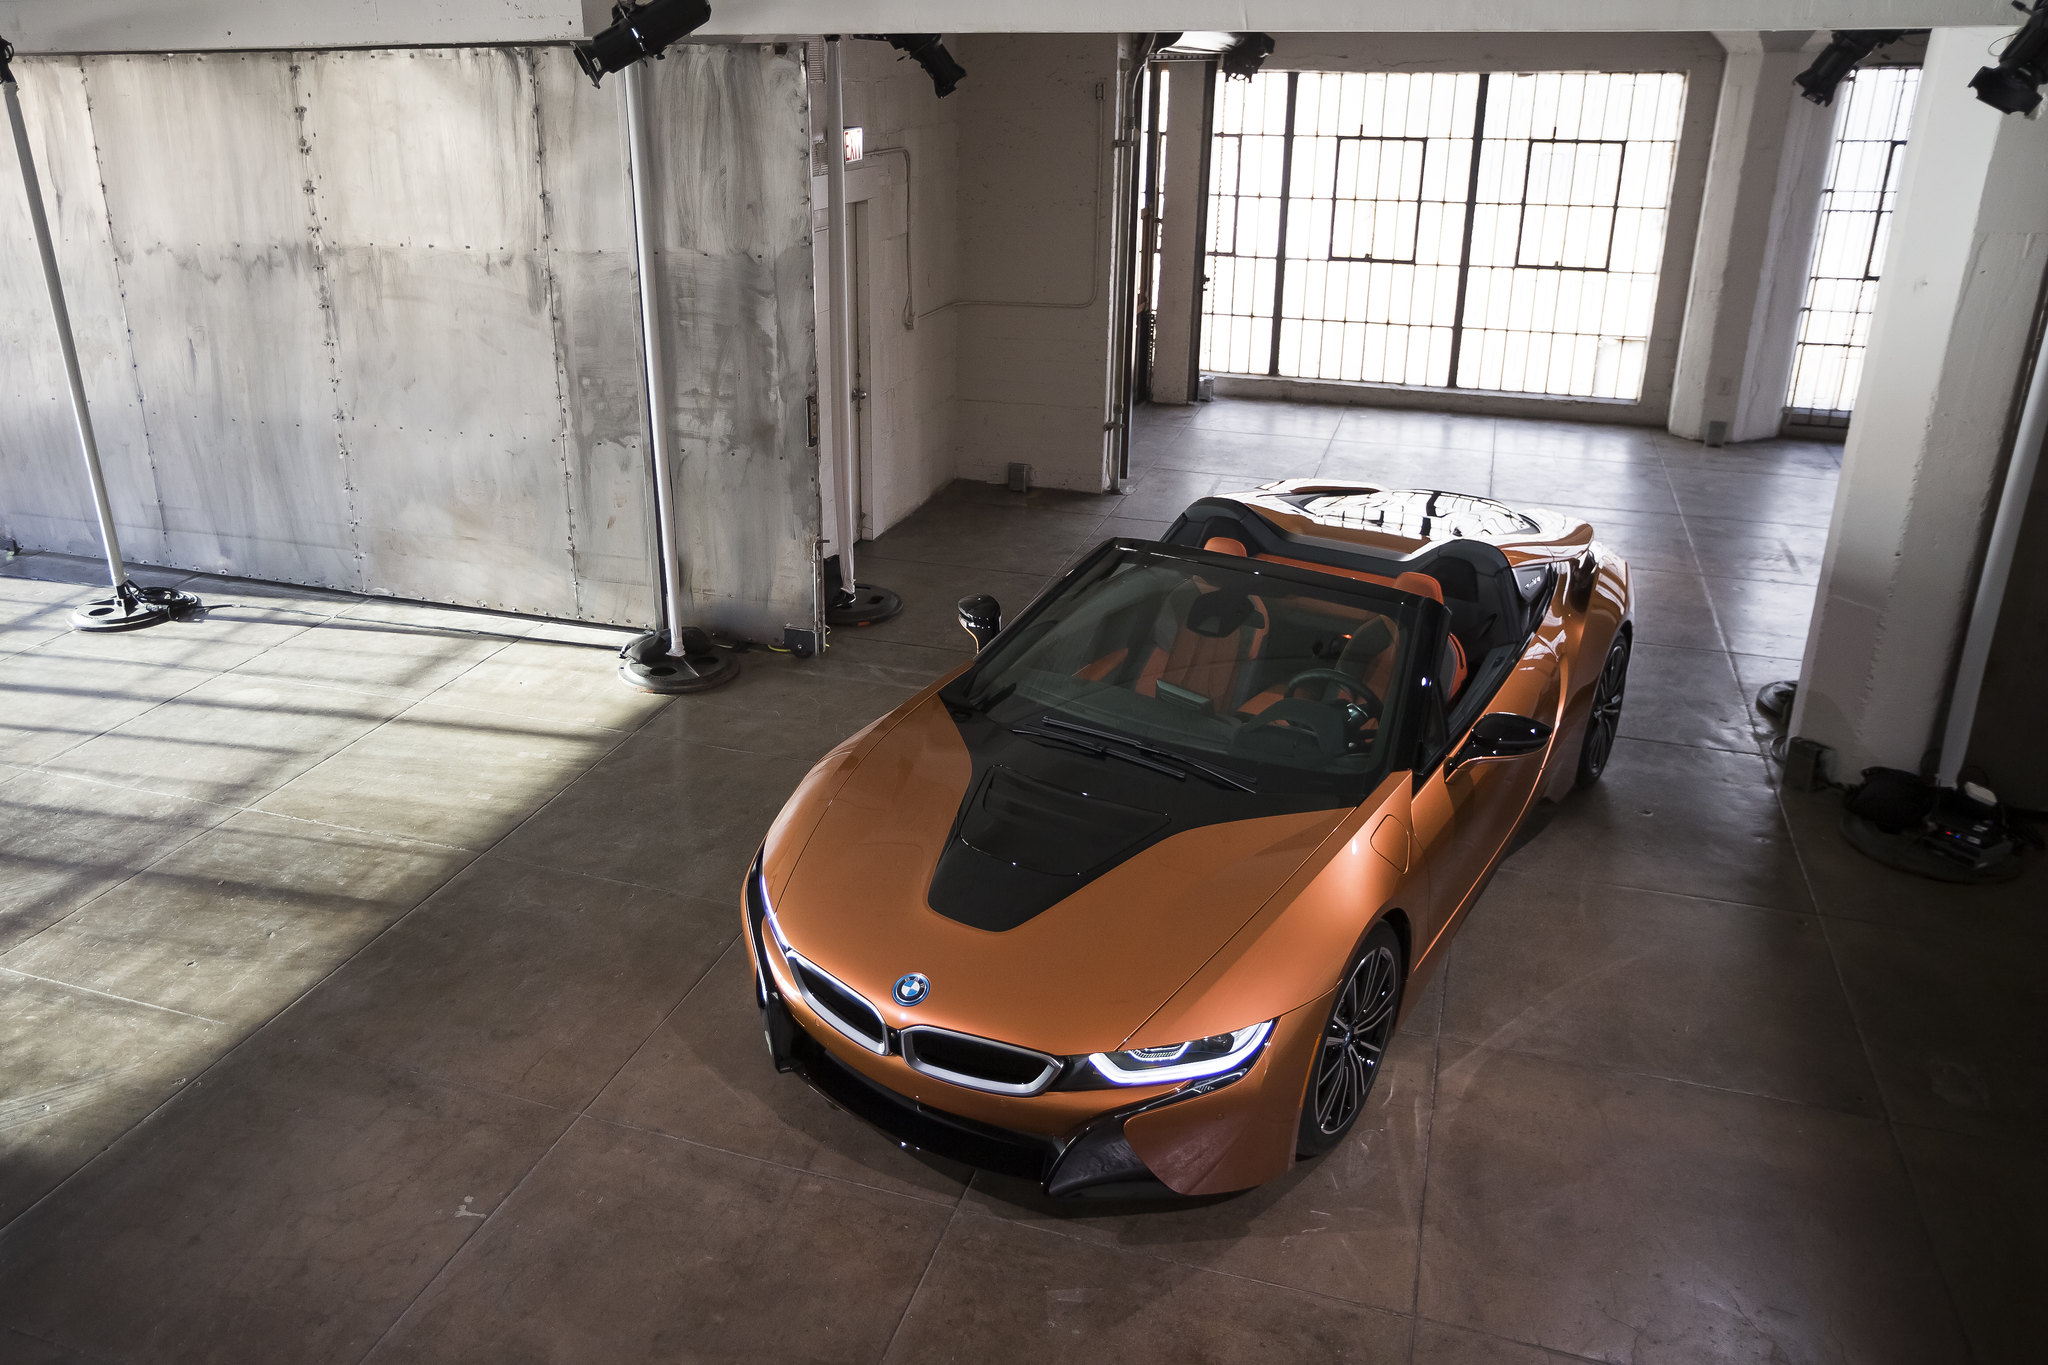 This is the new BMW i8 Roadster